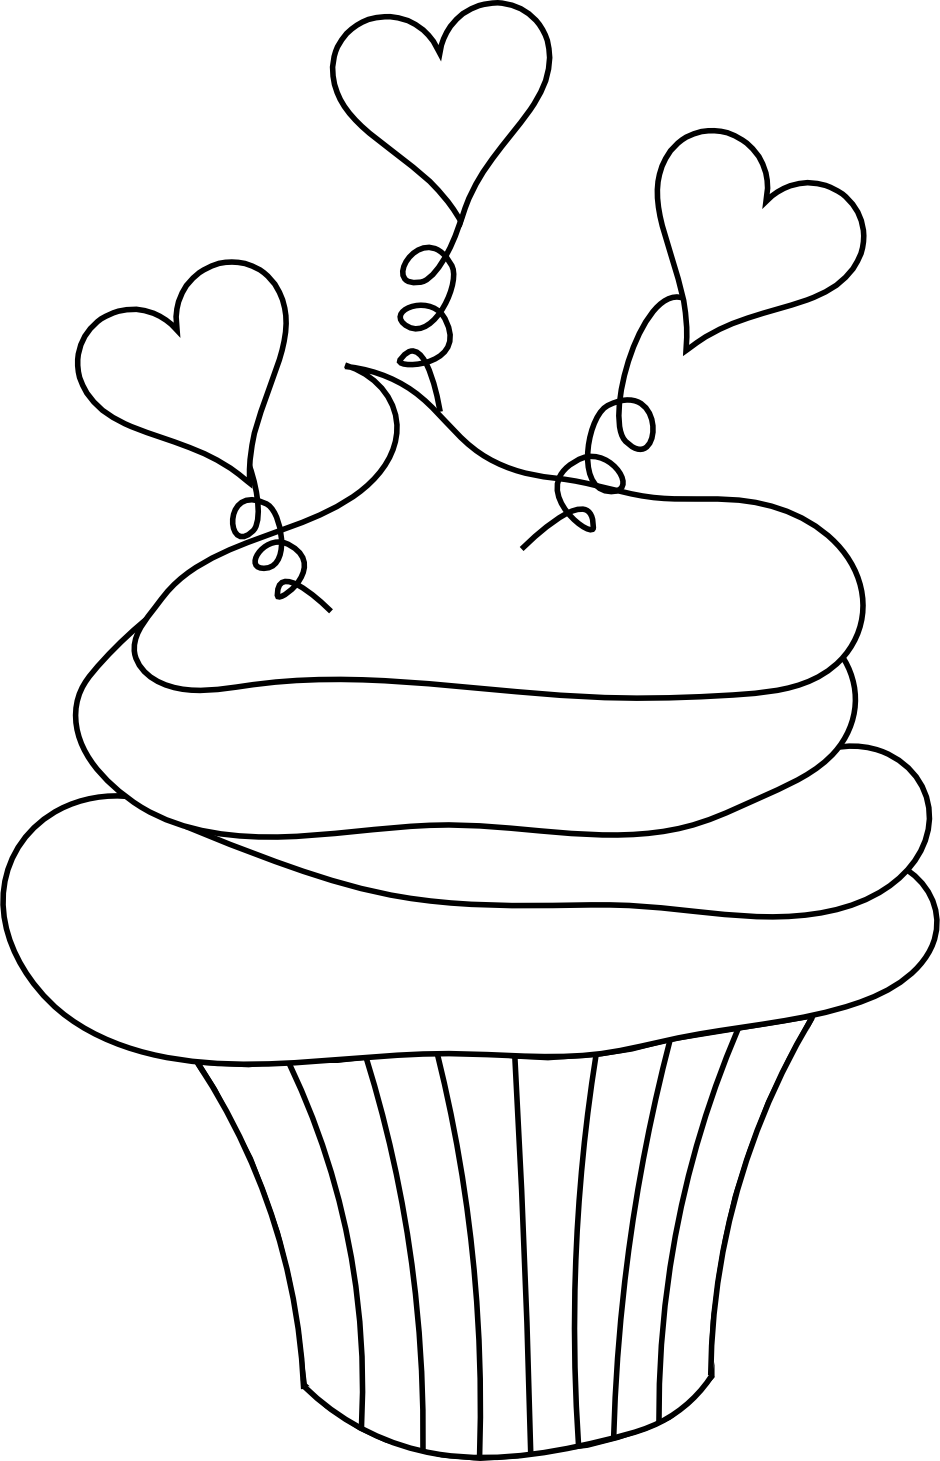 cupcake20outline20clipart20black20and20white